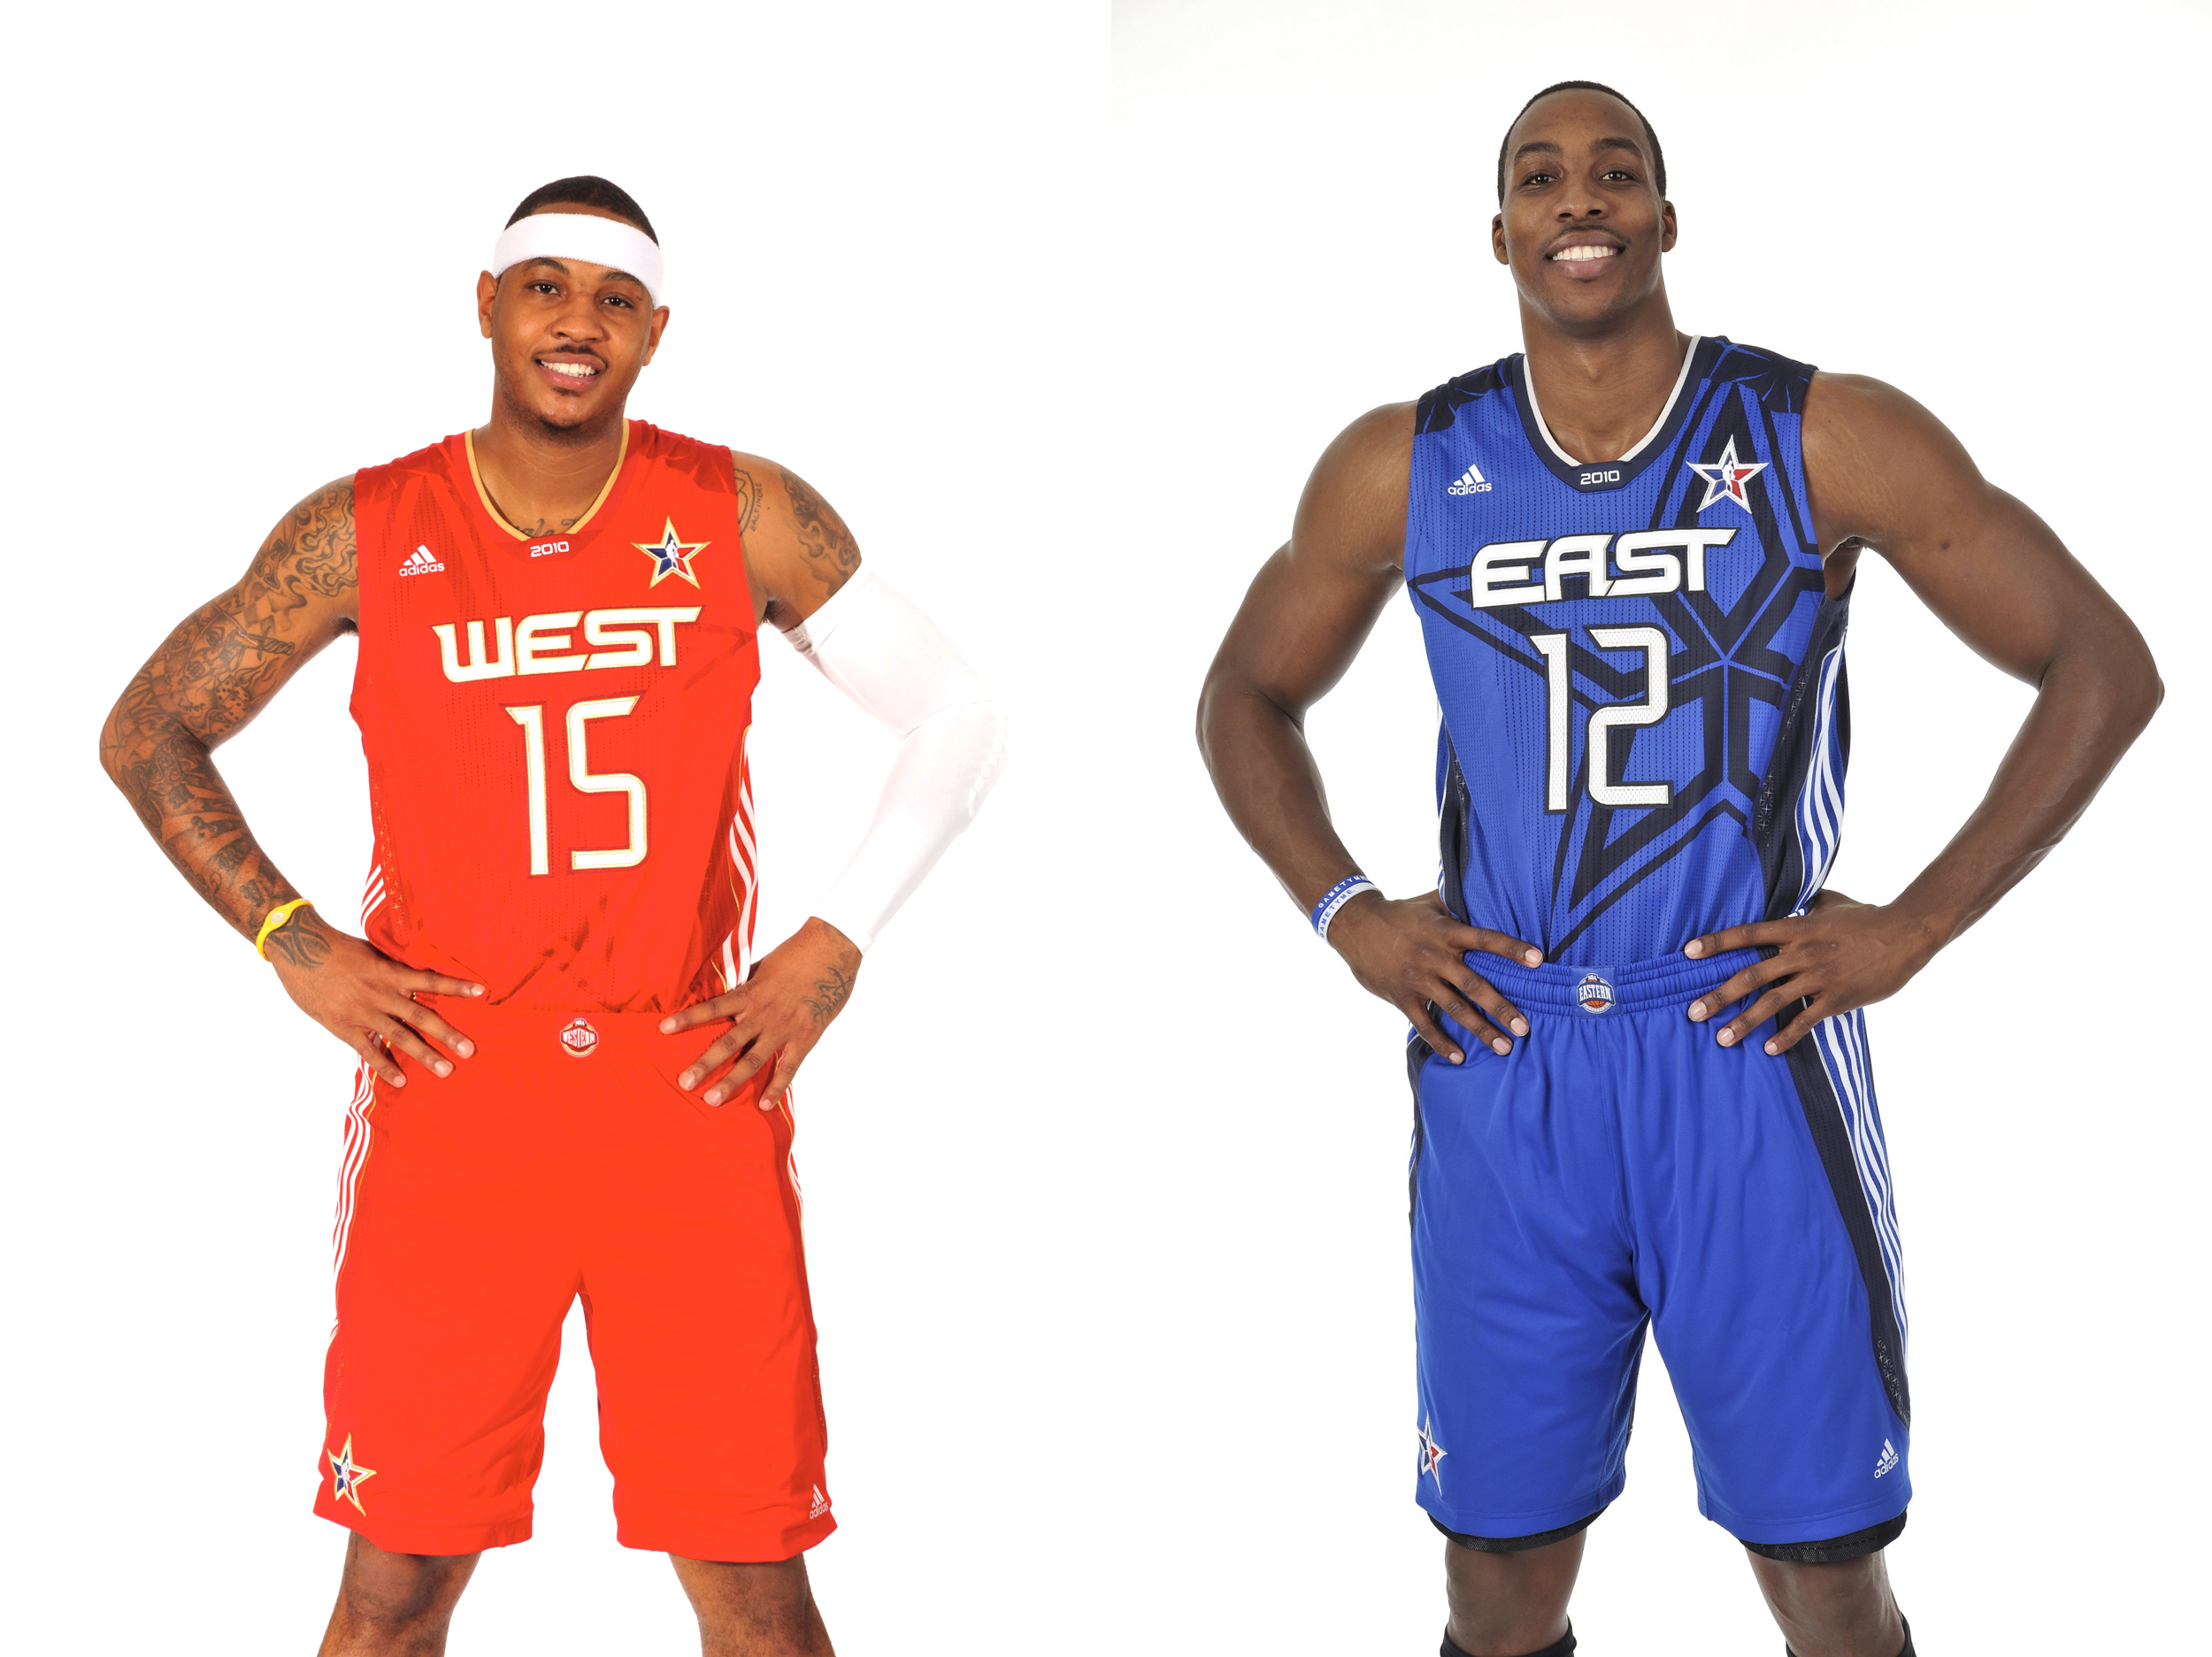 148d459aa09 Carmelo Anthony  15 of the Denver Nuggets and Dwight Howard  12 of the  Orlando